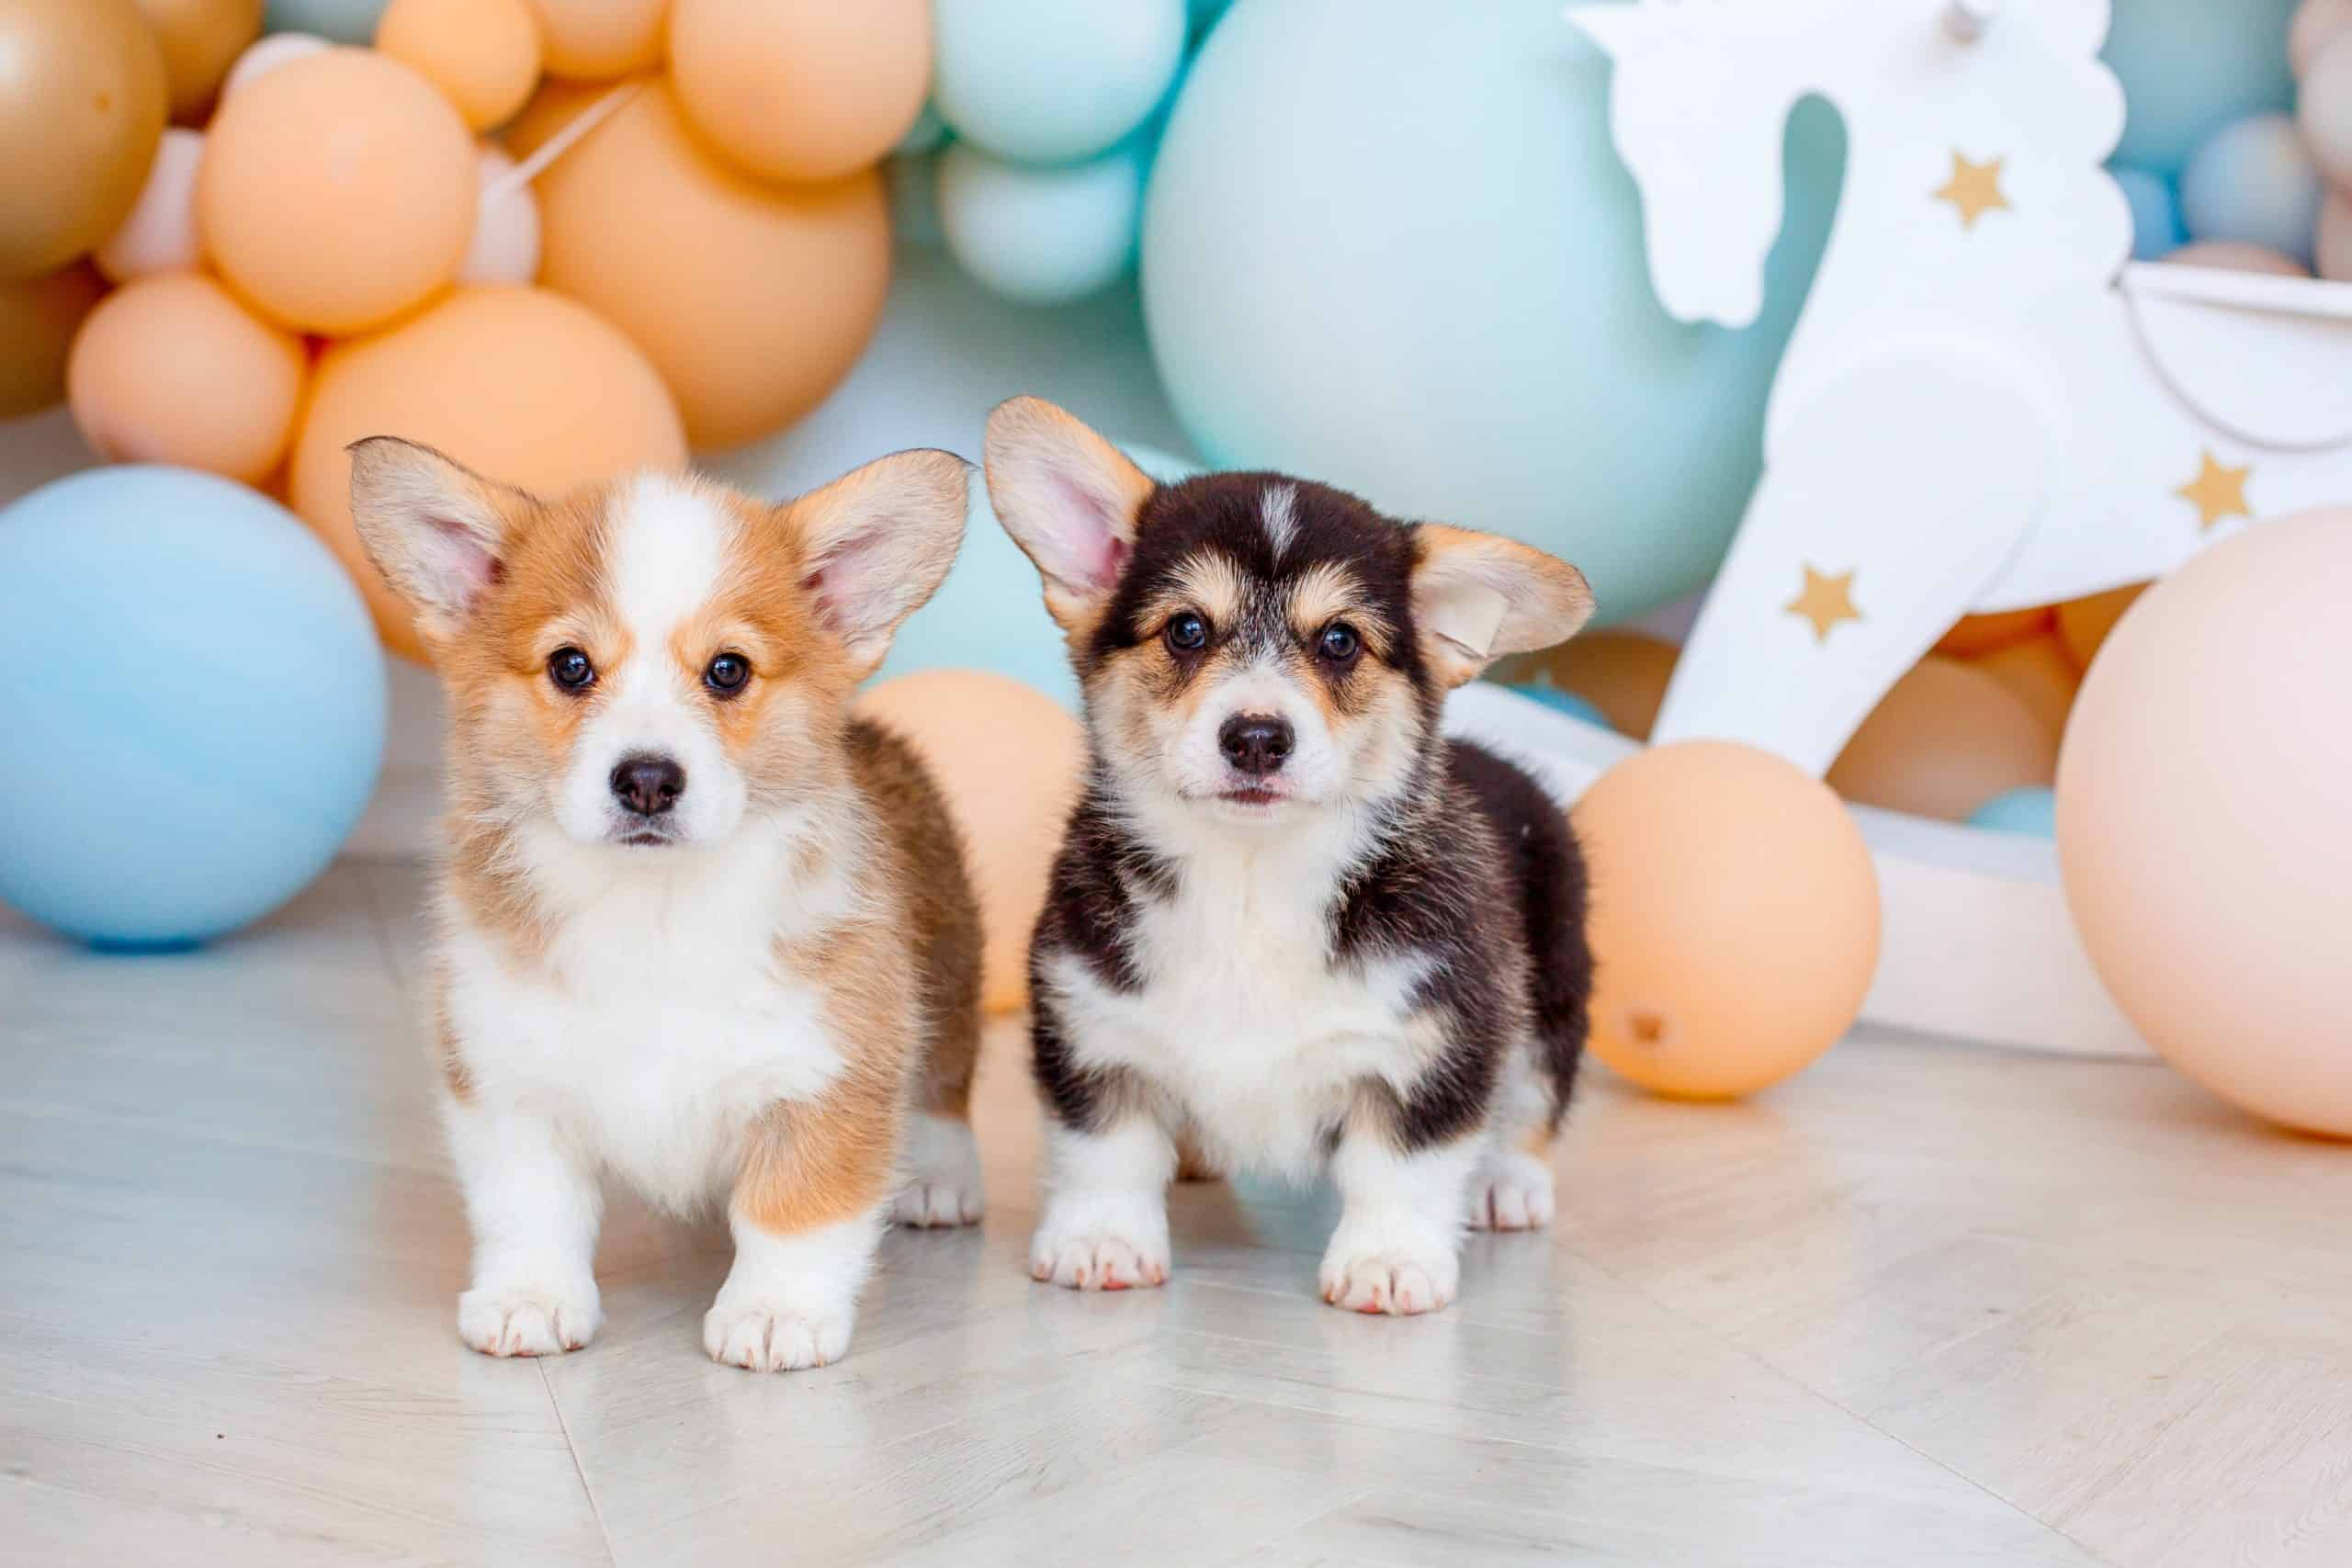 Pair of Pembroke Welsh Corgi puppies pose in photo studio. Pet portrait styles include modern, cartoons, and photography.